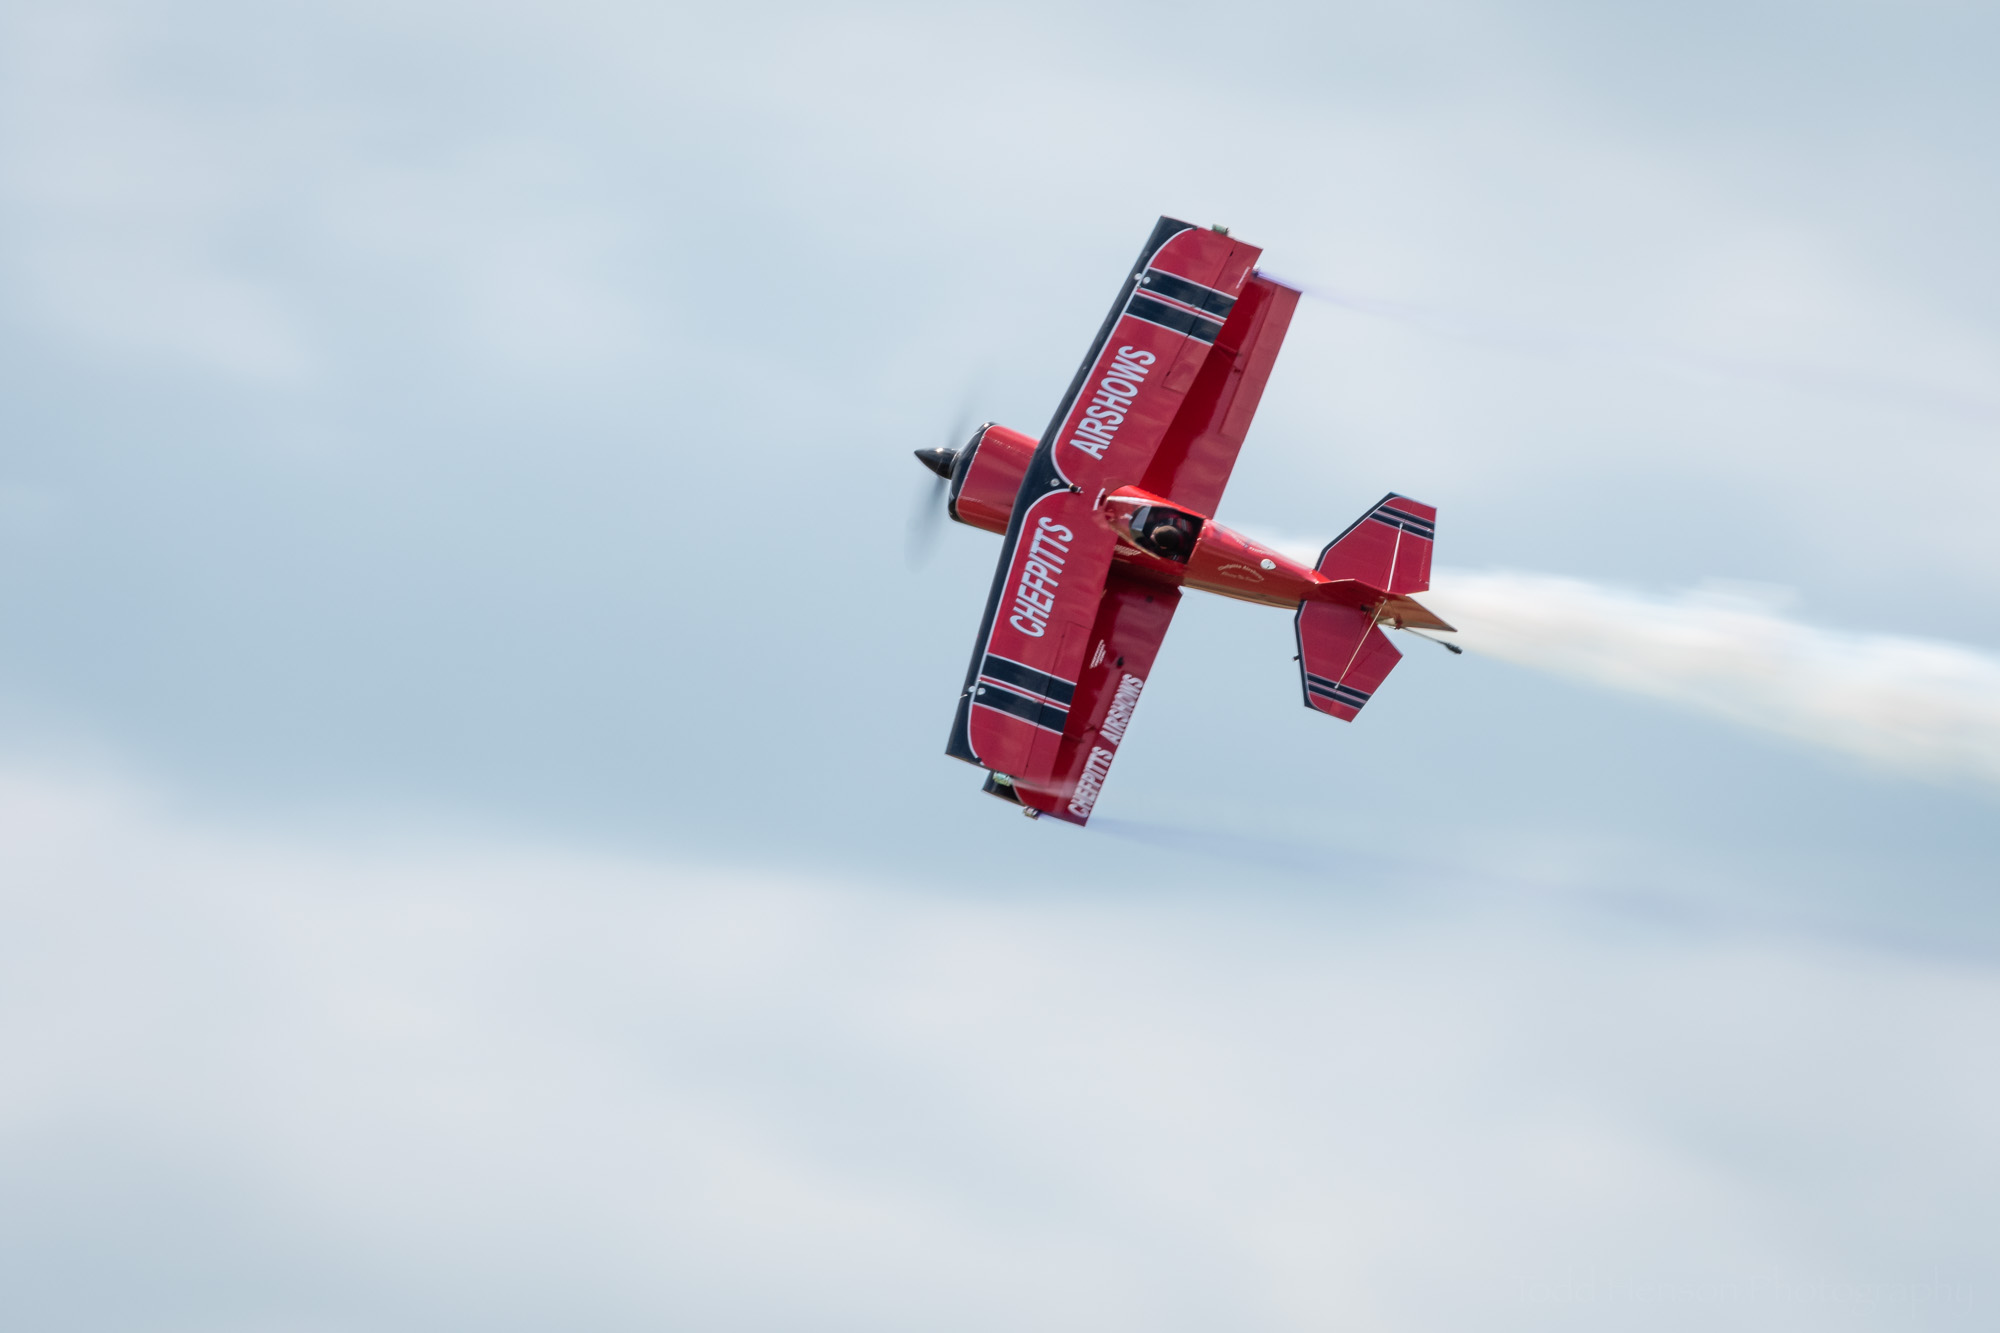 Chef Pitts and his amazingly aerobatic Pitts S1S biplane.